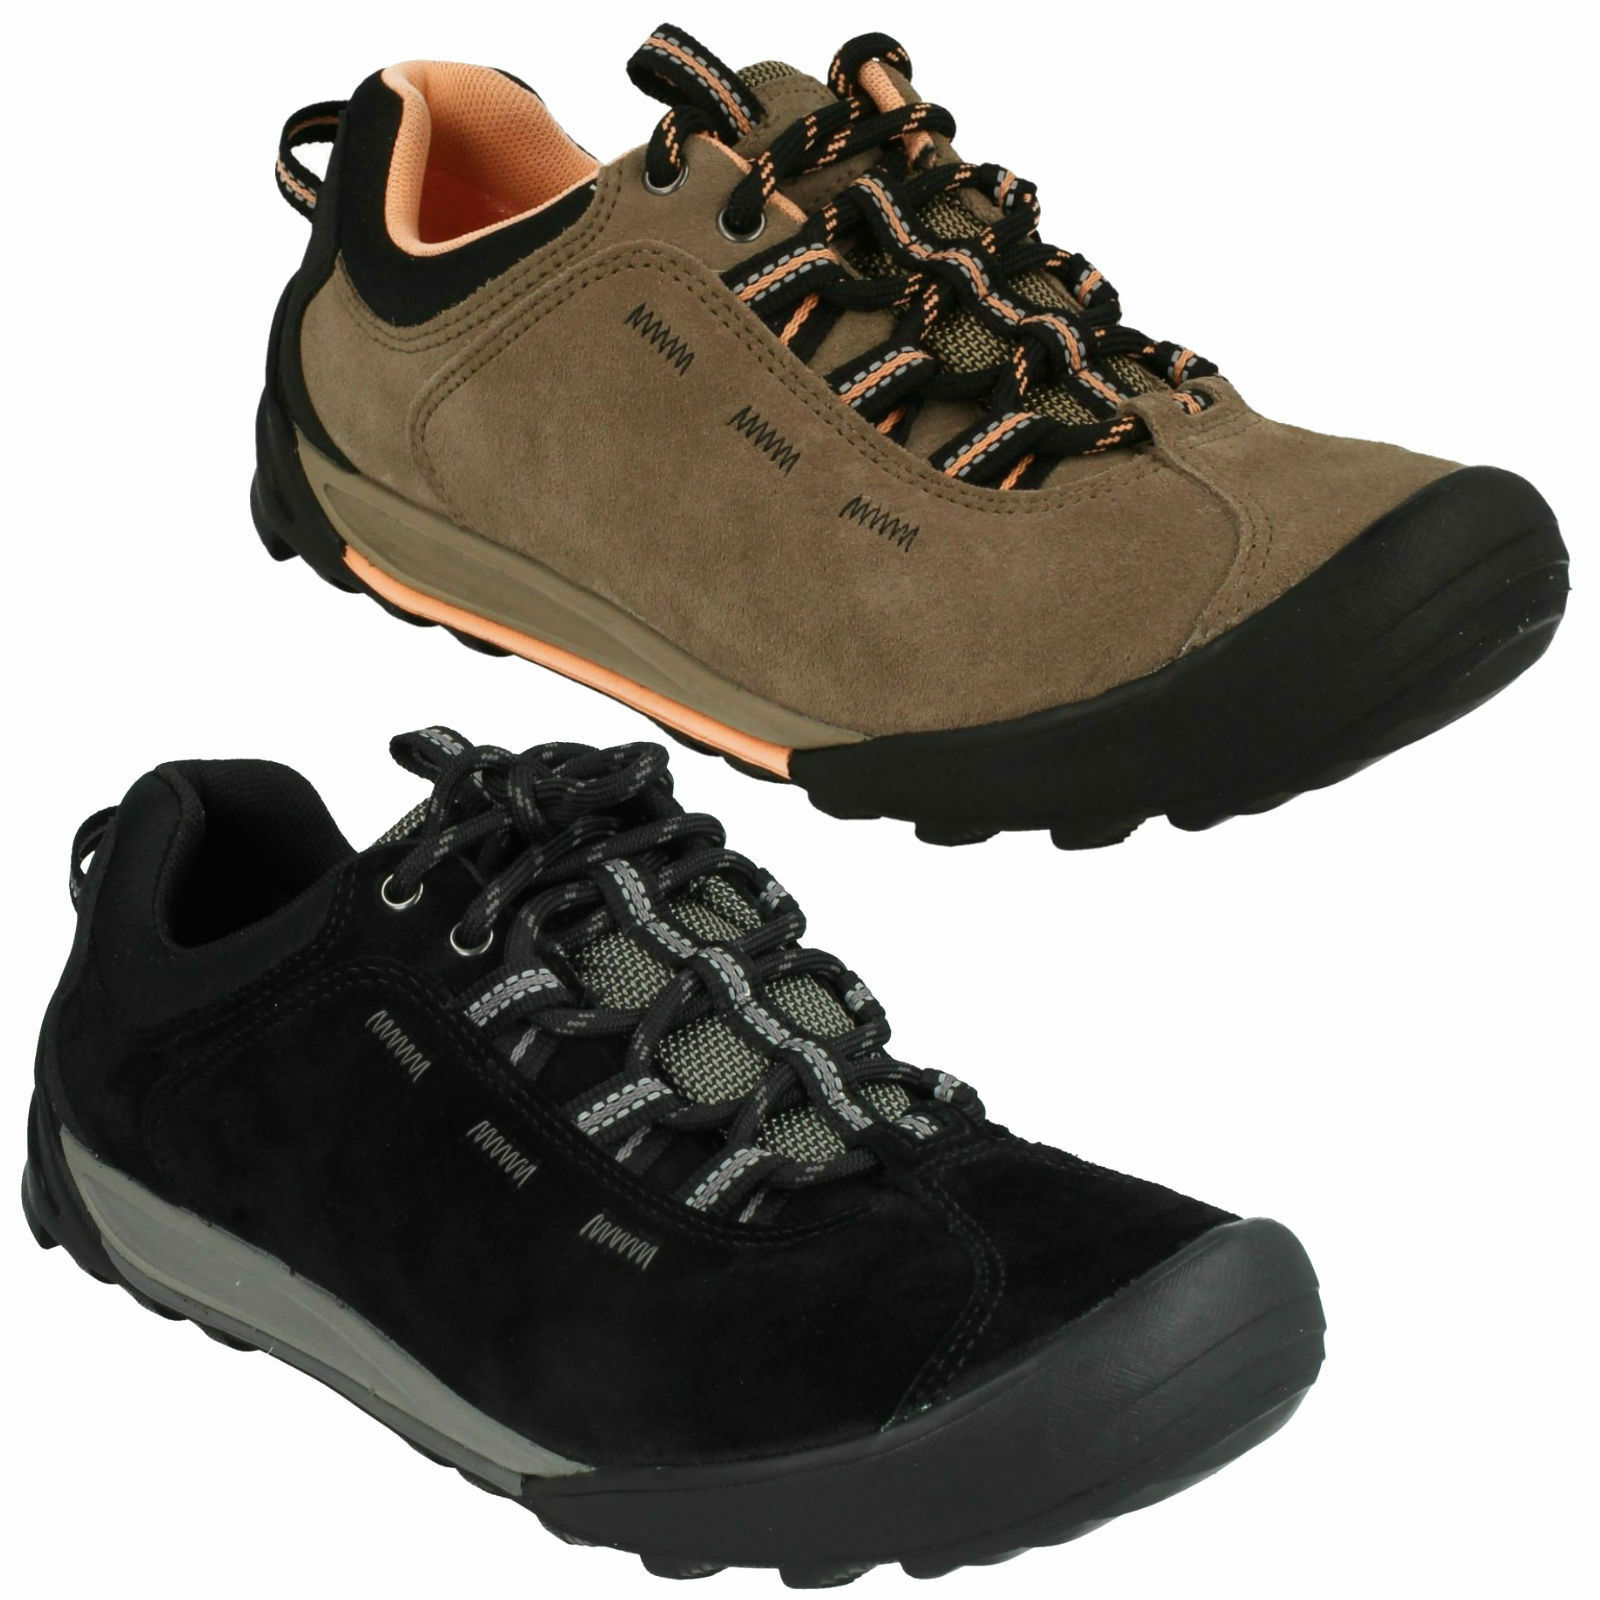 OUTLAY WEST LADIES CLARKS LACE UP CASUAL WALKING LEATHER  TRAIL TRAINERS Schuhe